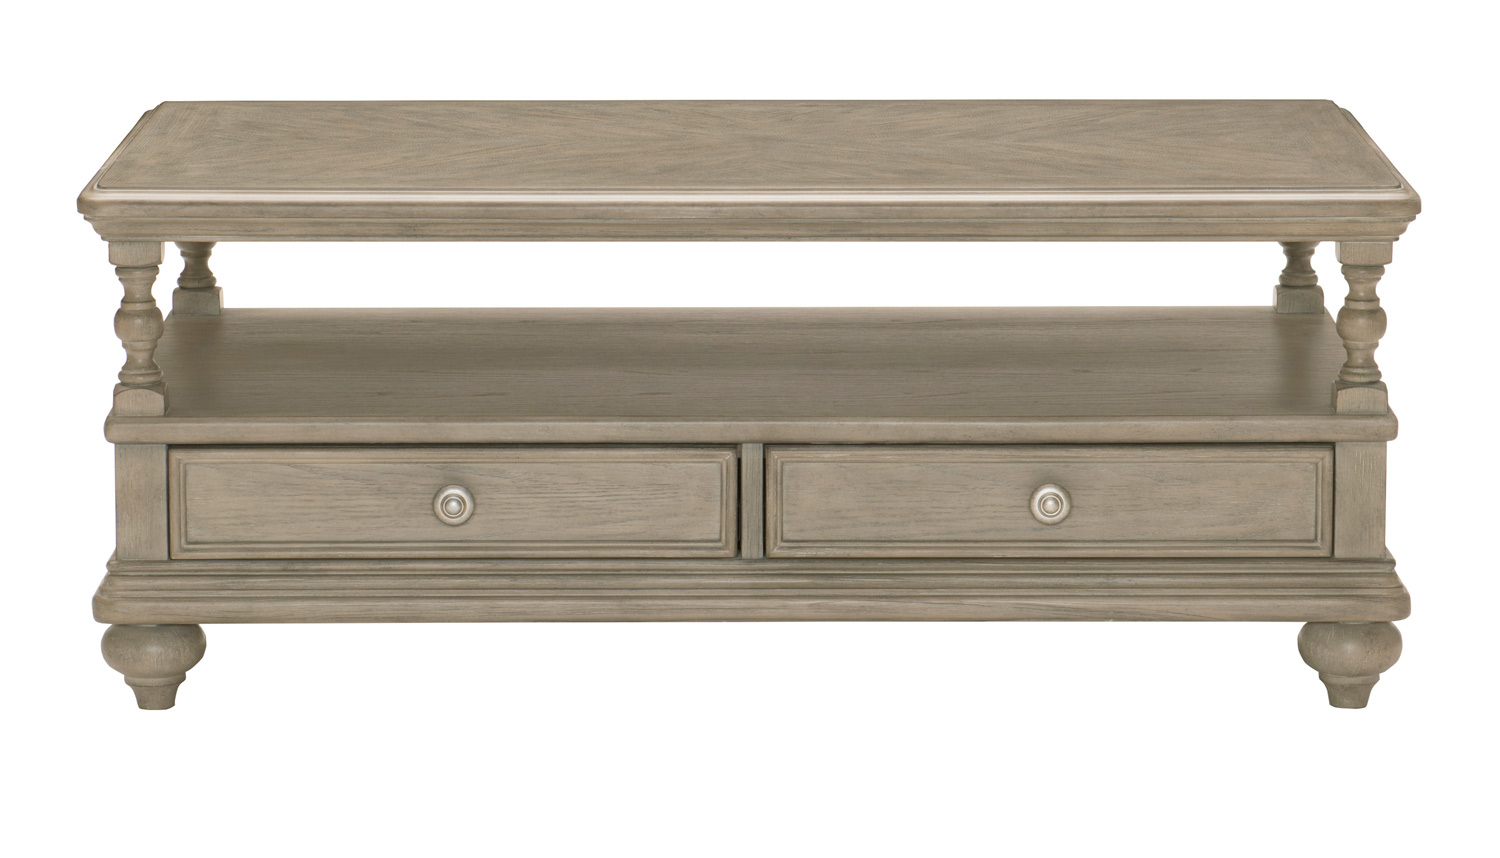 Homelegance Grayling Down Cocktail Table with Two Functional Drawers - Driftwood Gray